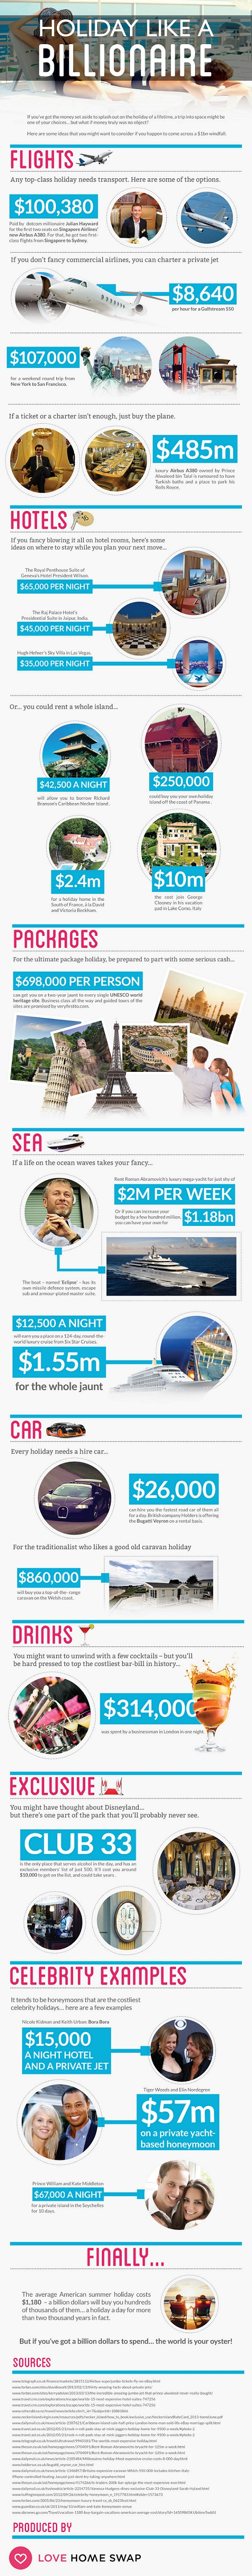 Hottest Vacation Ideas for Billionaires